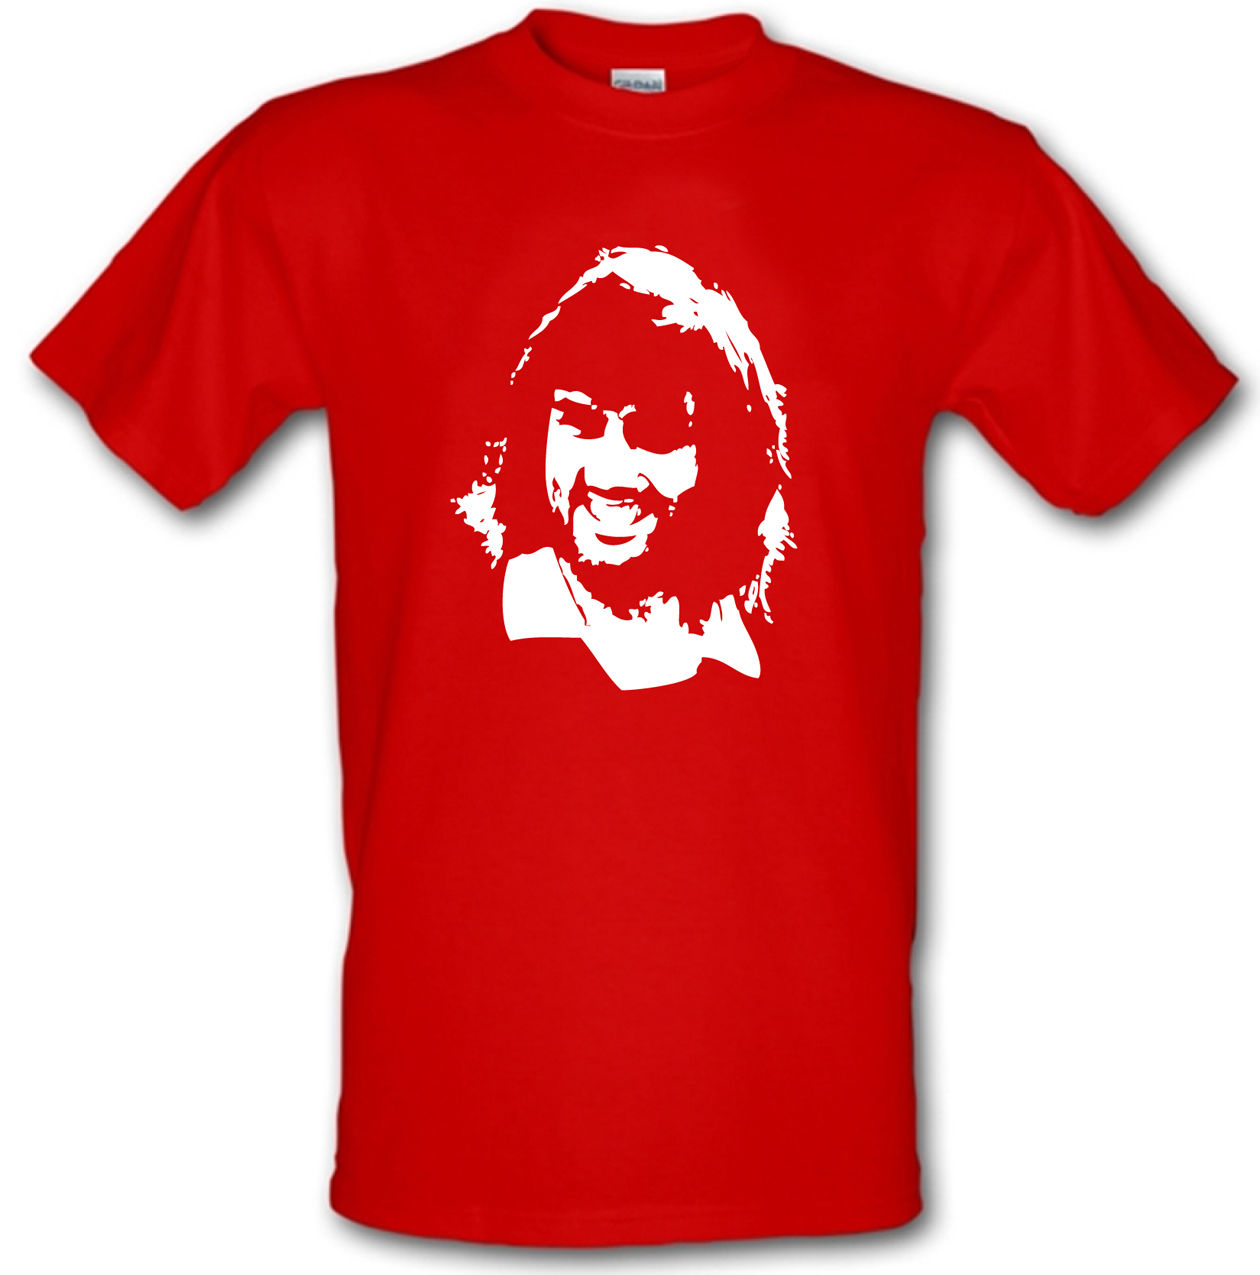 GEORGE BEST Man United Footballer Legend Heavy Cotton T-shirt Sizes Small -XXL image